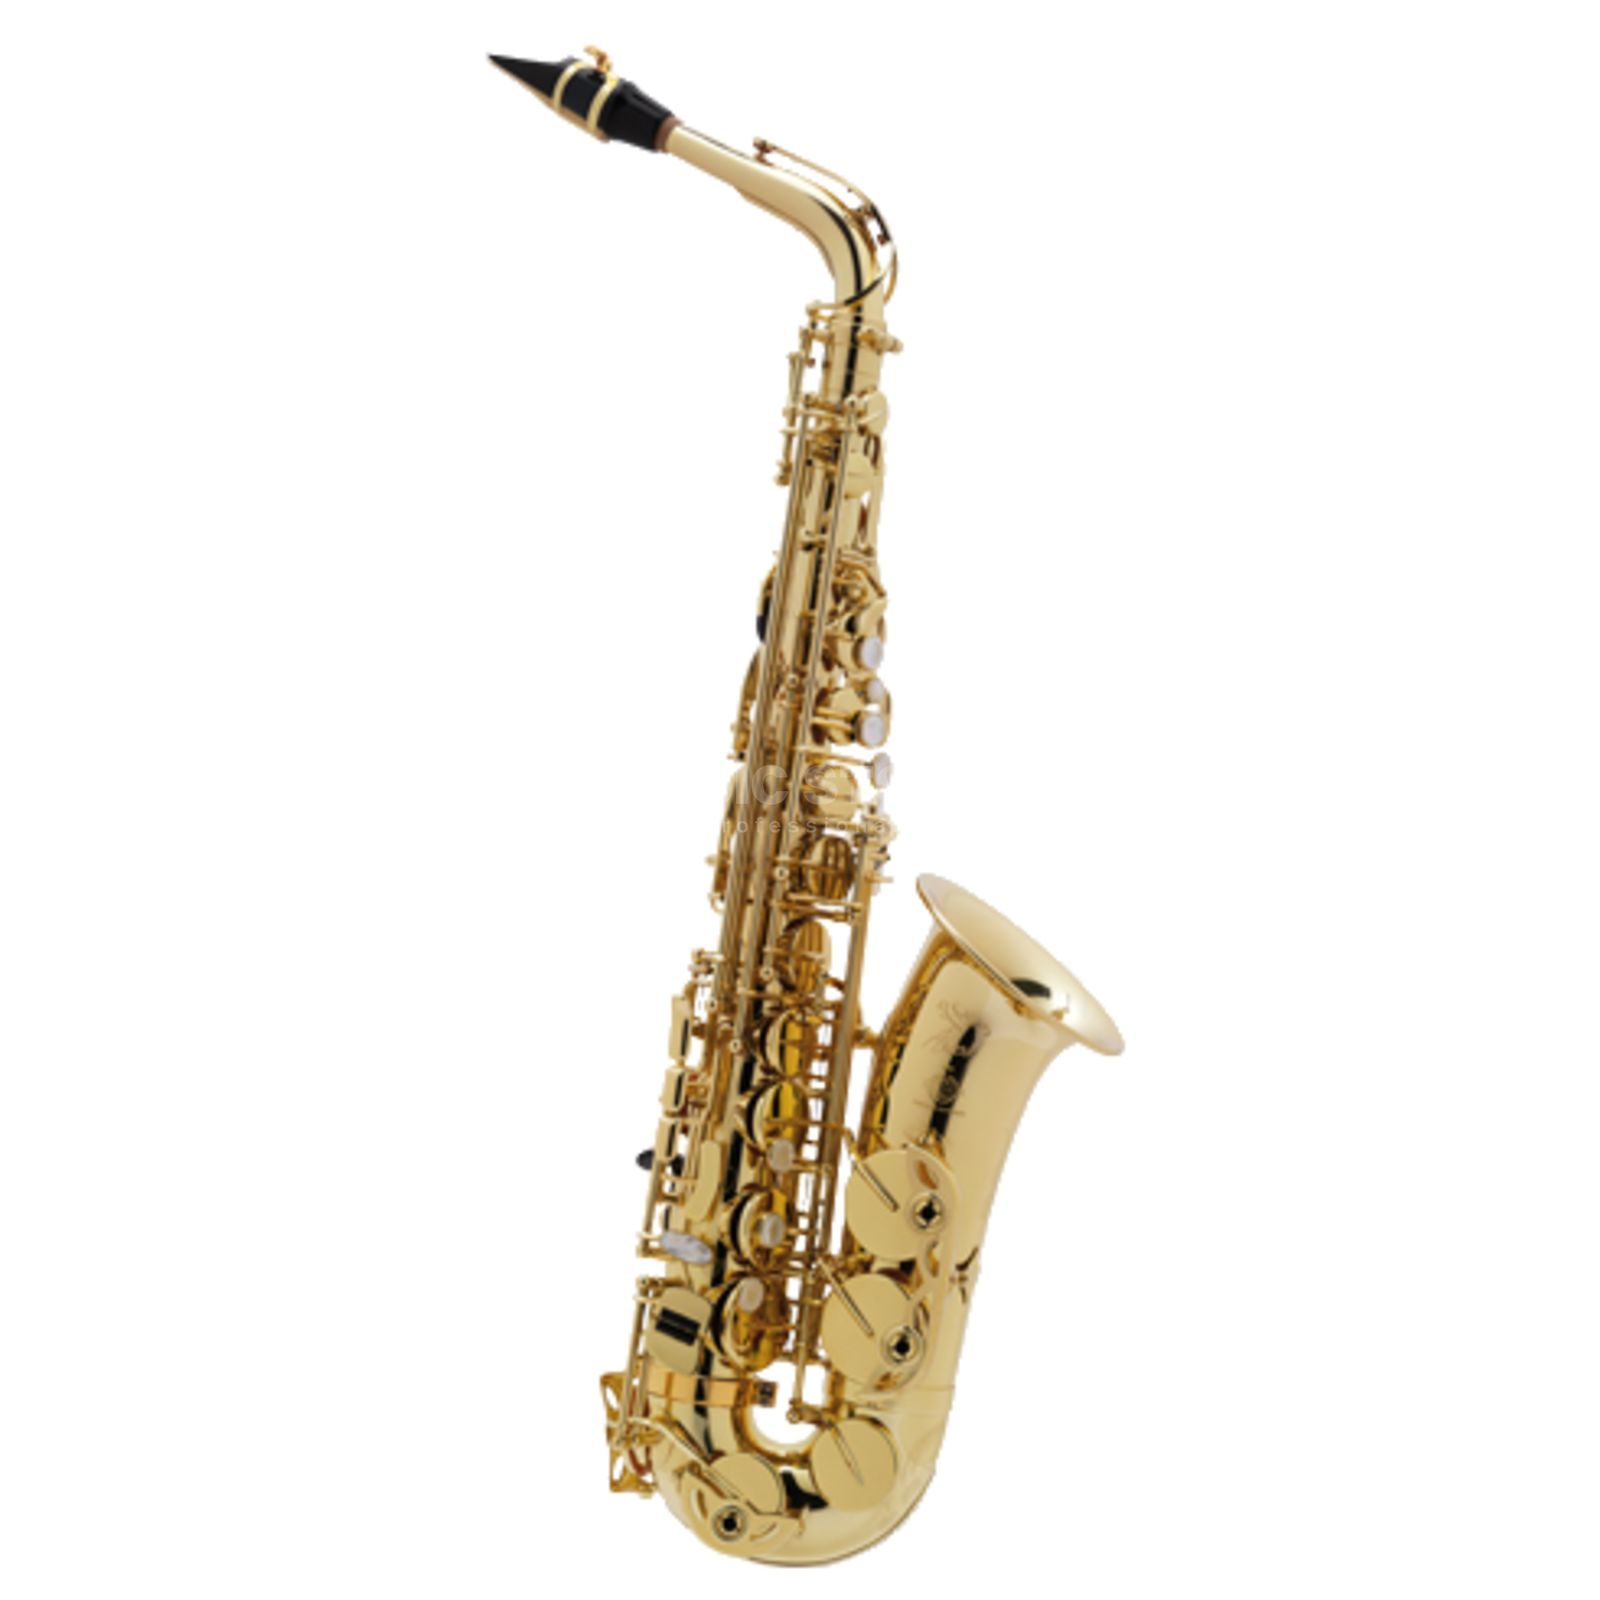 SeleS Axos Eb Alto Saxophone - made by Selmer in France Image du produit